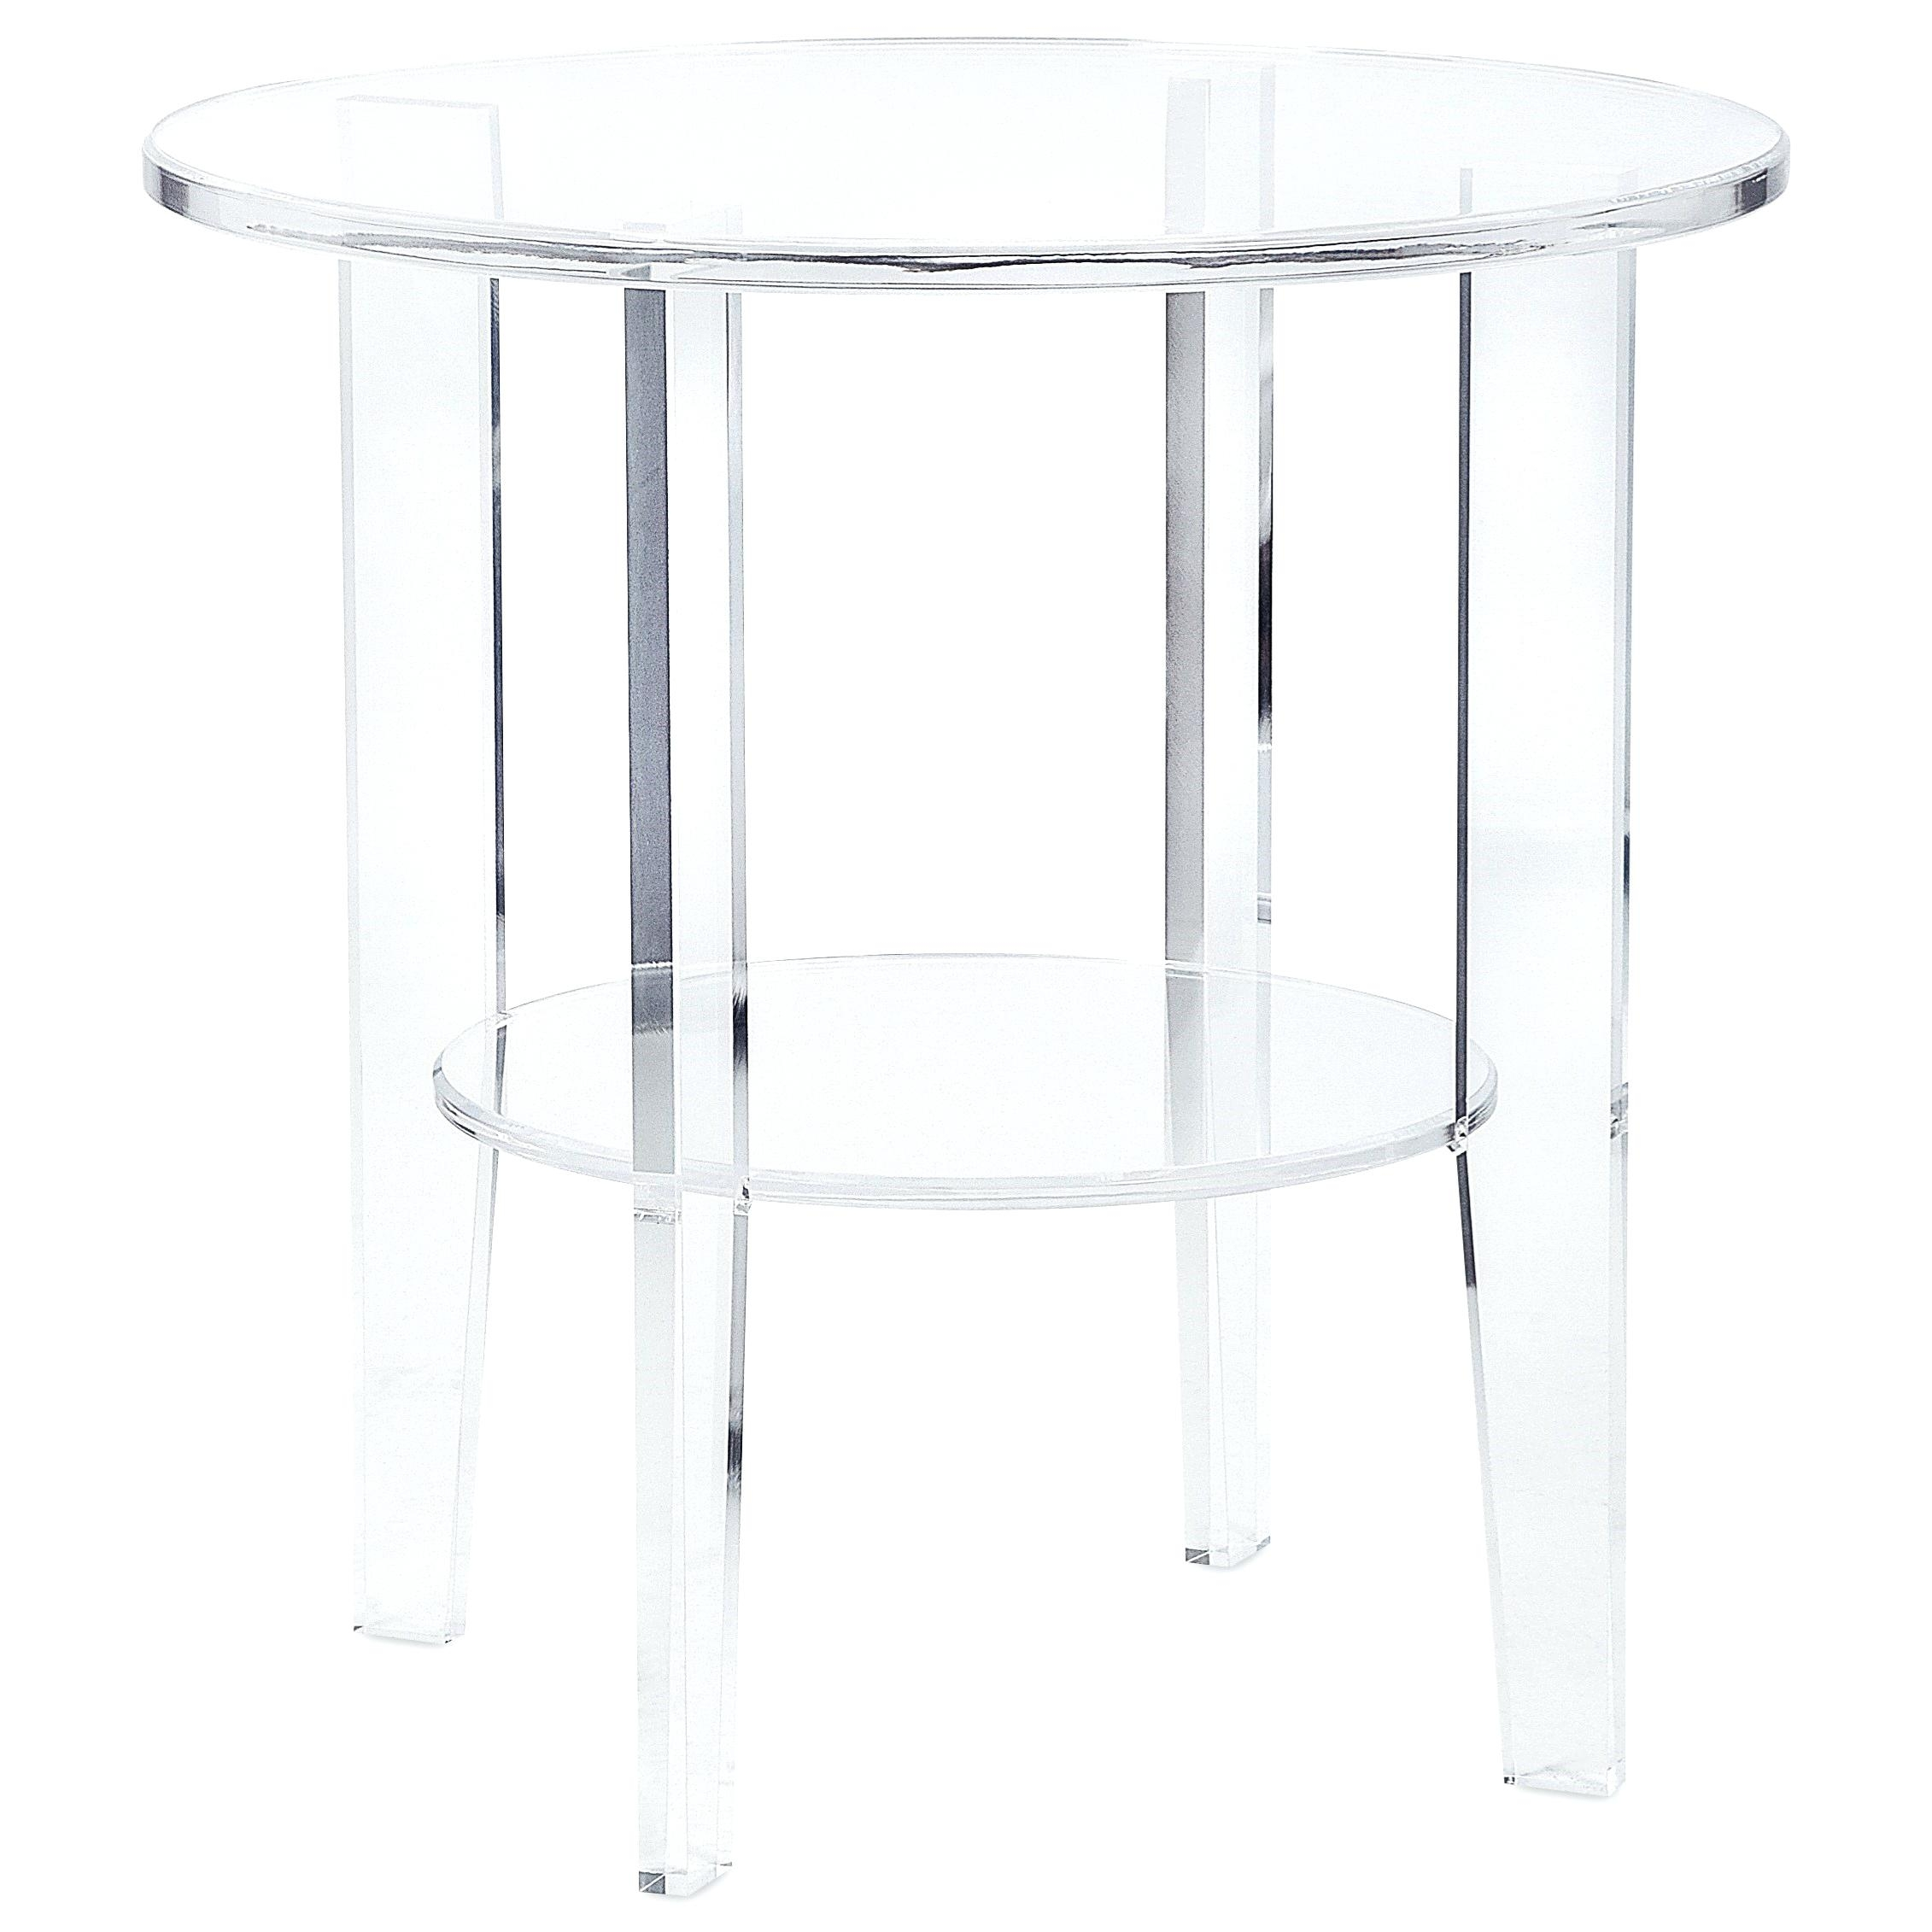 Acrylic Accent Tables Awesome Acrylic End Tables Acrylic Fabrication throughout Peekaboo Acrylic Tall Coffee Tables (Image 10 of 30)